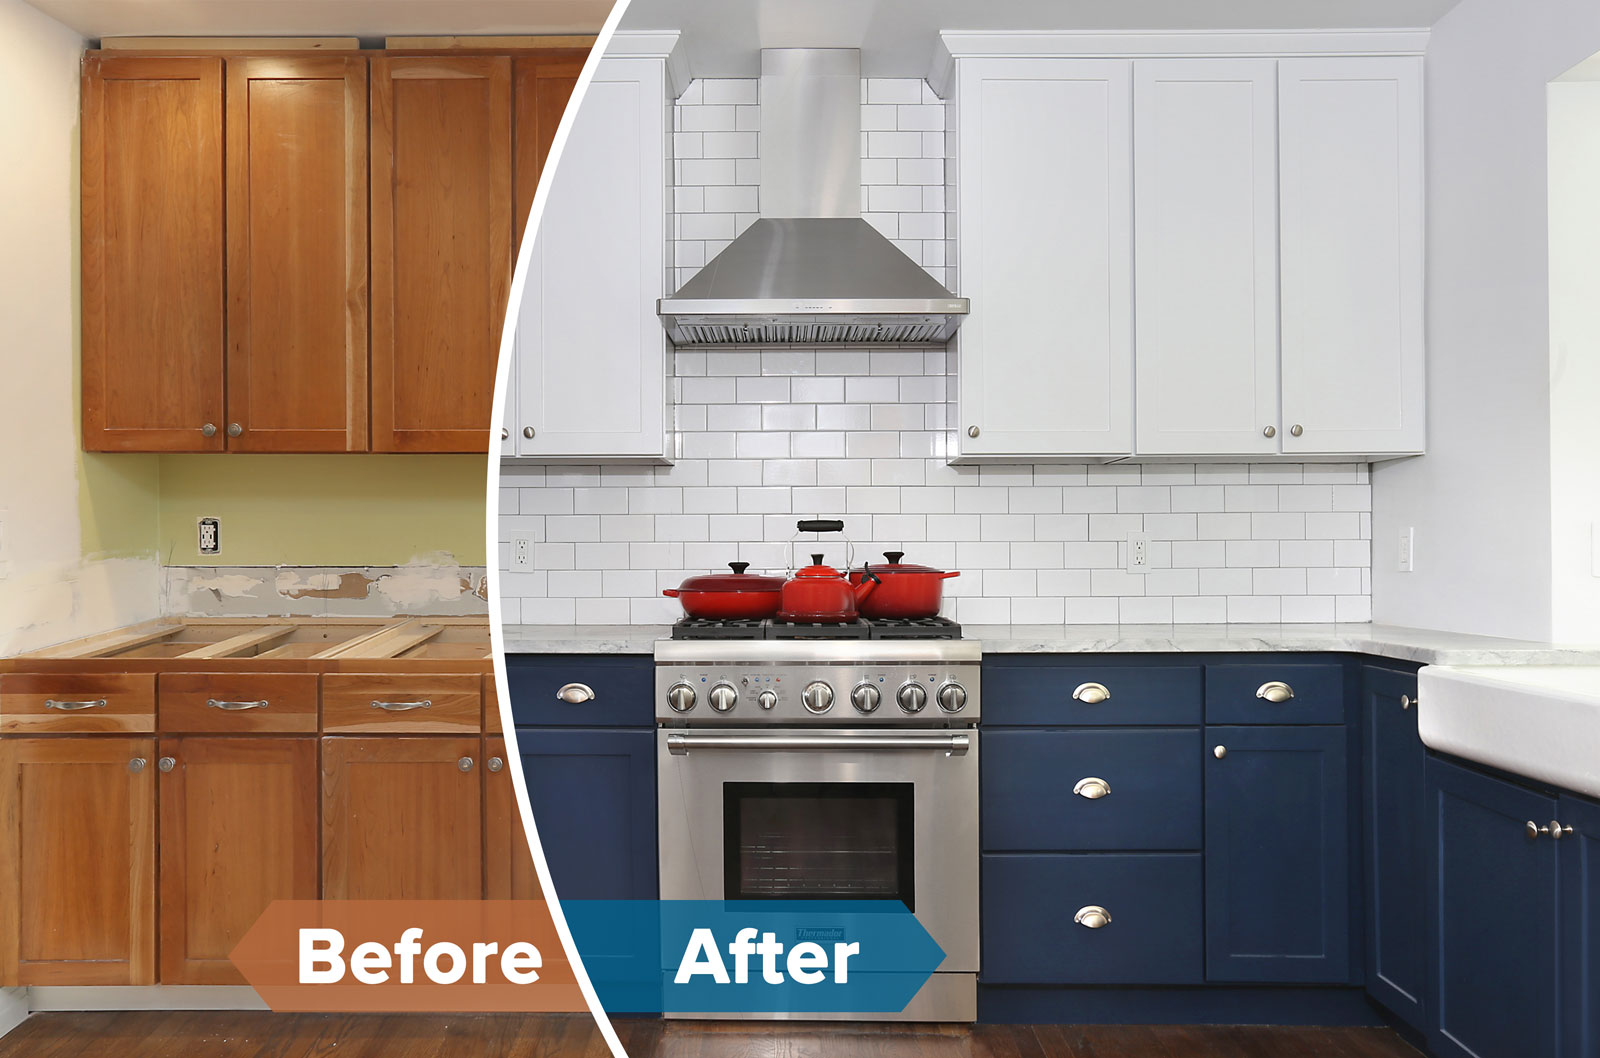 N-Hance Wood Refinishing Franchise before and after kitchen cabinets